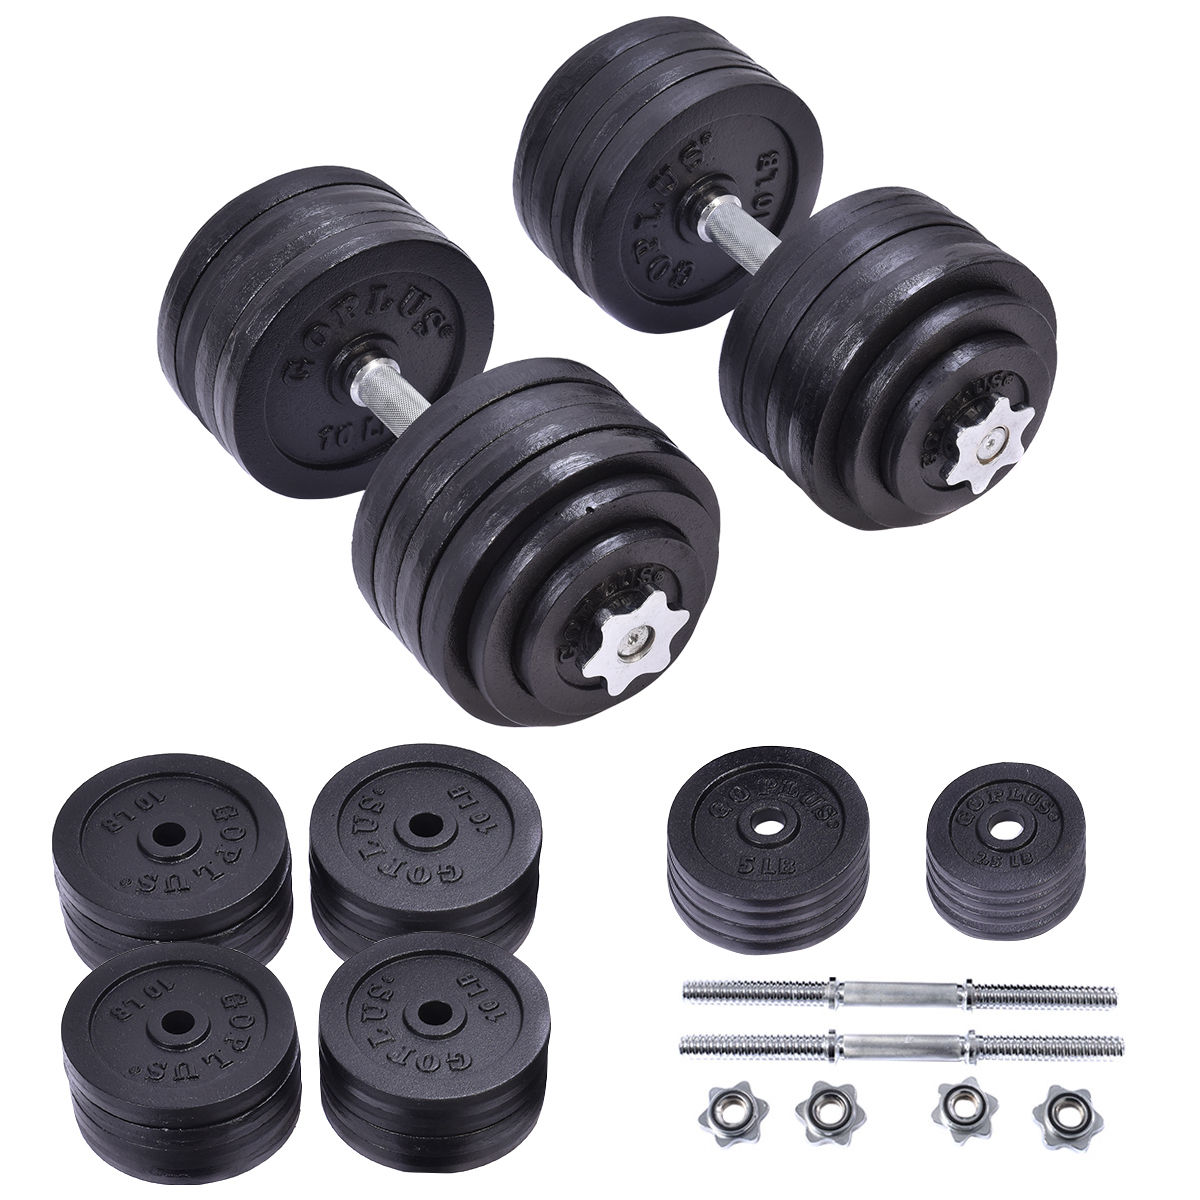 Costway 200 LB Weight Dumbbell Set Adjustable Cap Gym Barbell Plates Body Workout